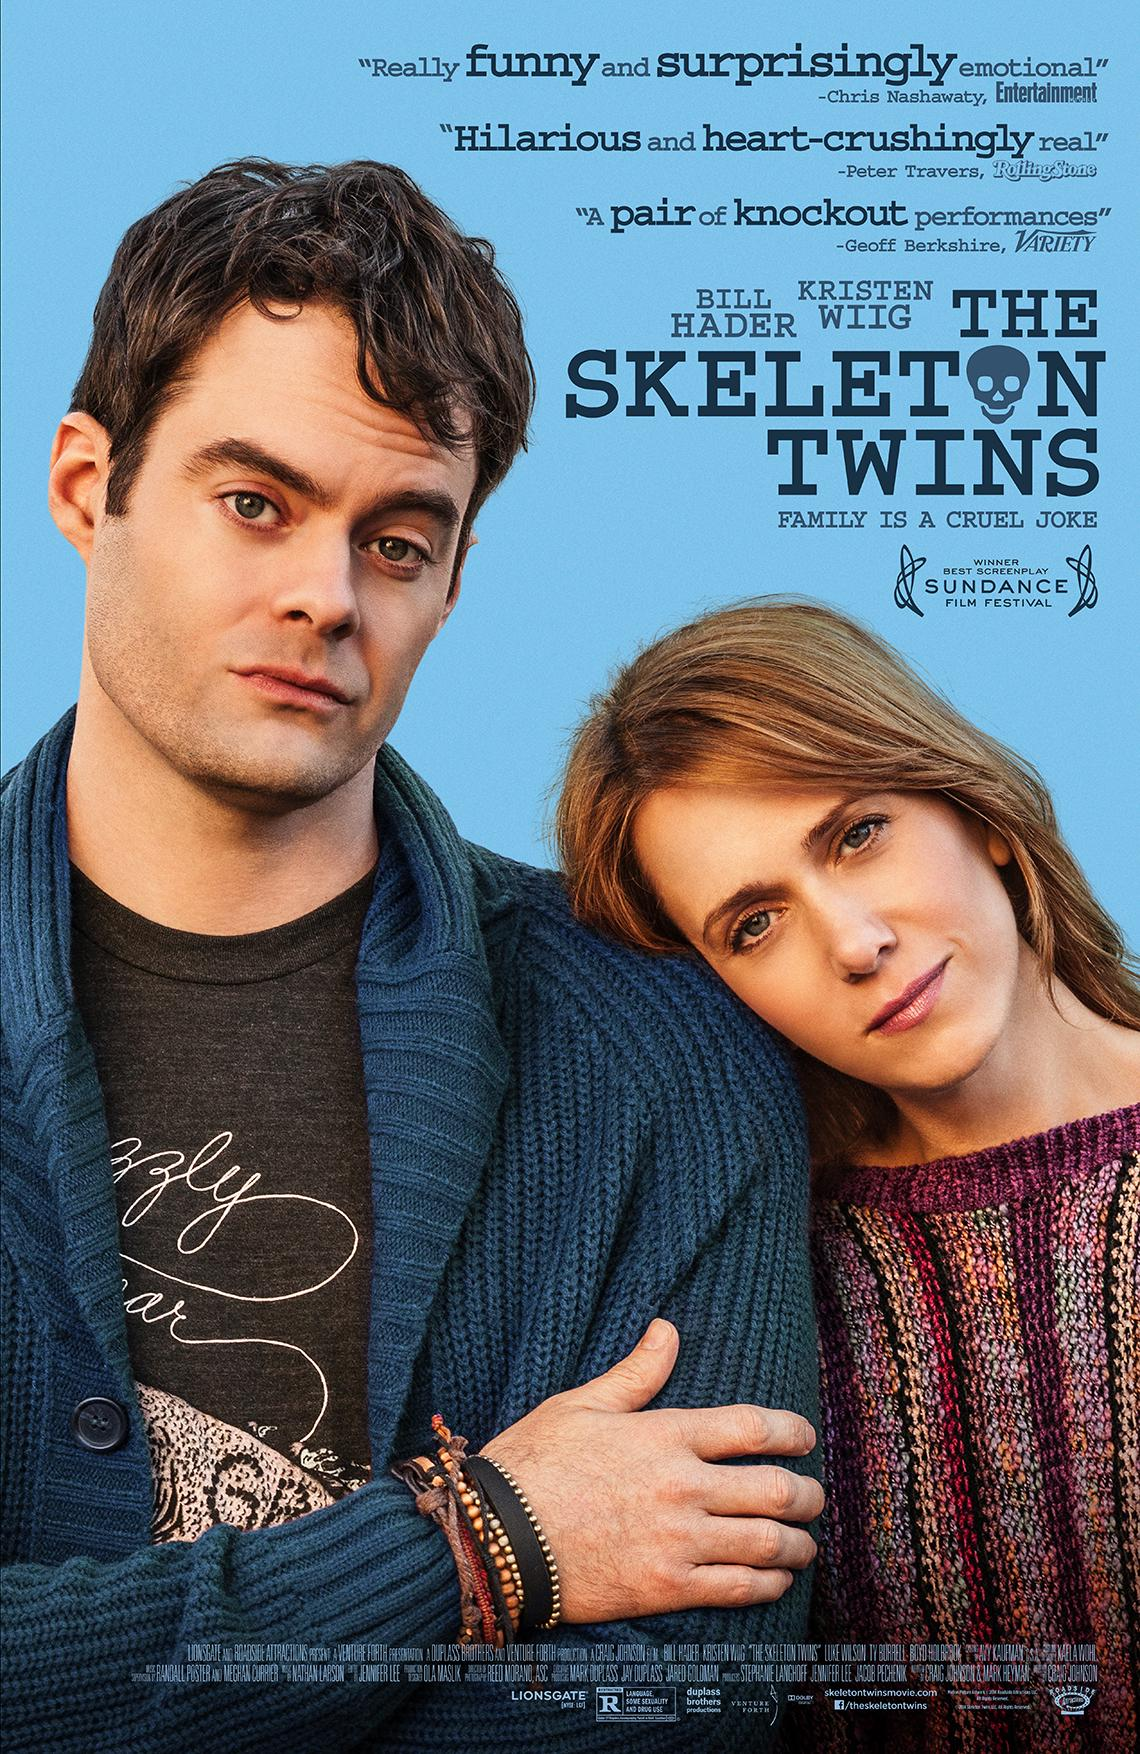 The Skeleton Twins Movie Review | Nettv4u.com